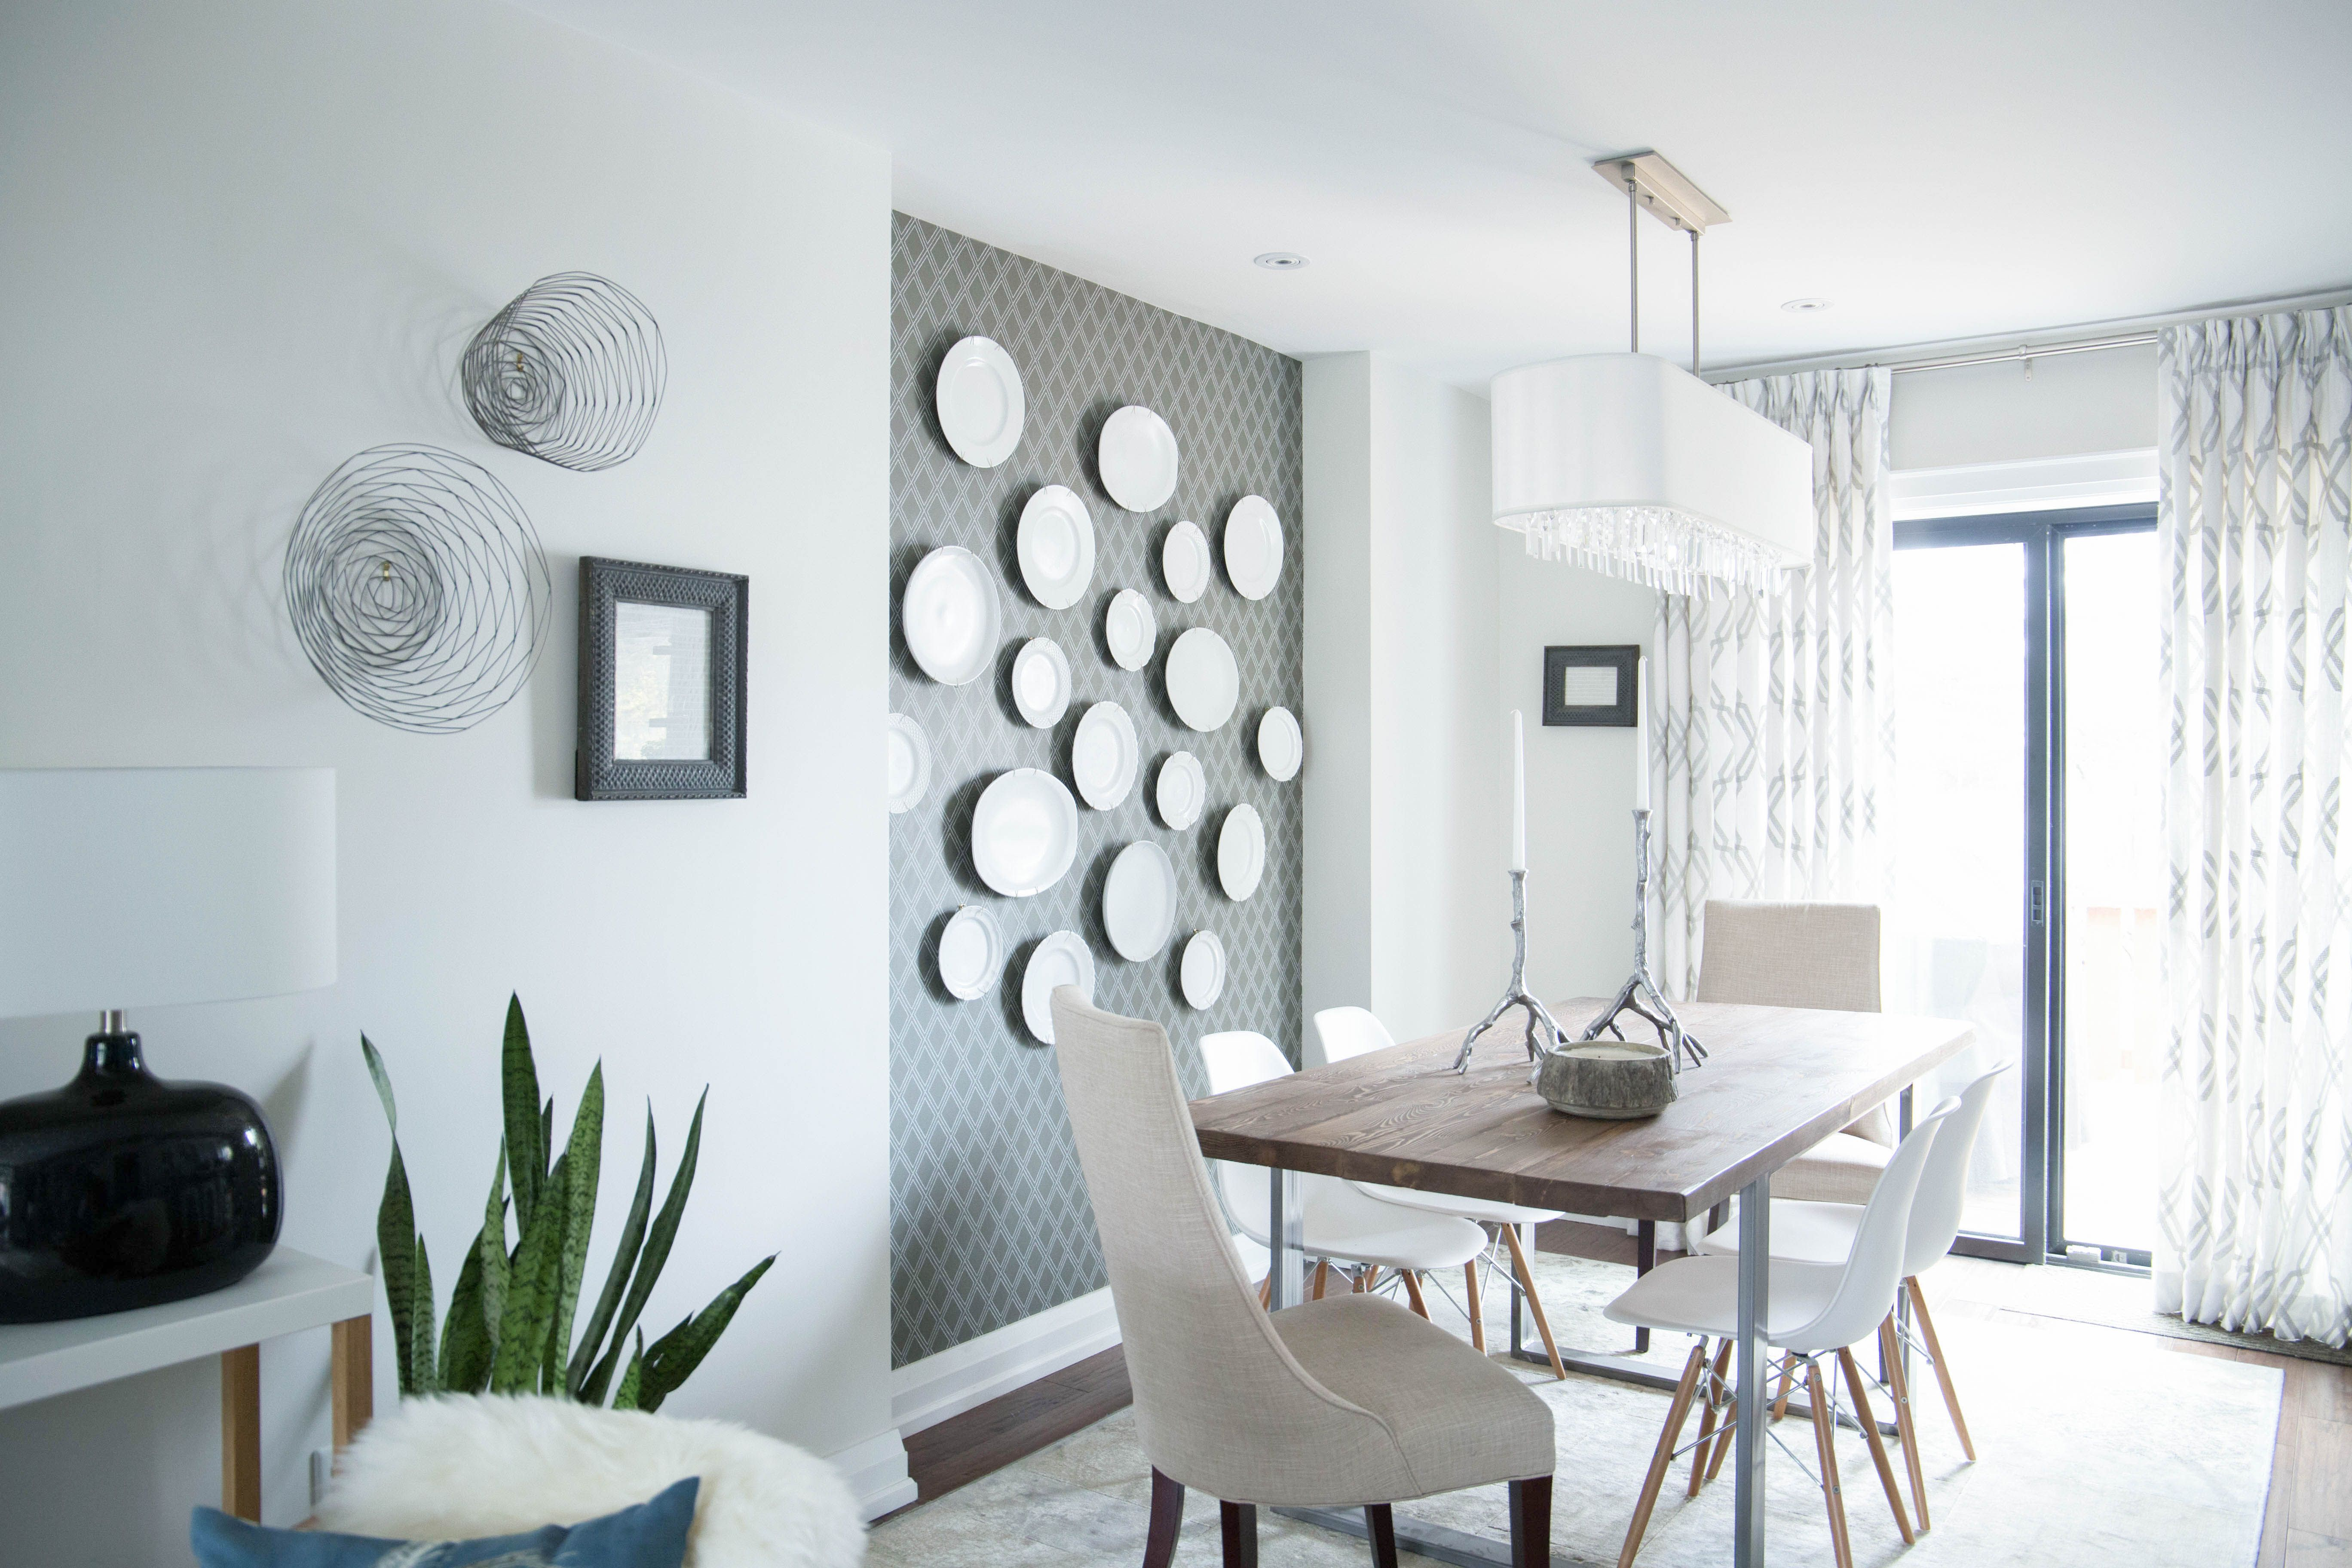 Property Brothers Dining Room Reveal by Karin Bennett Designs ...